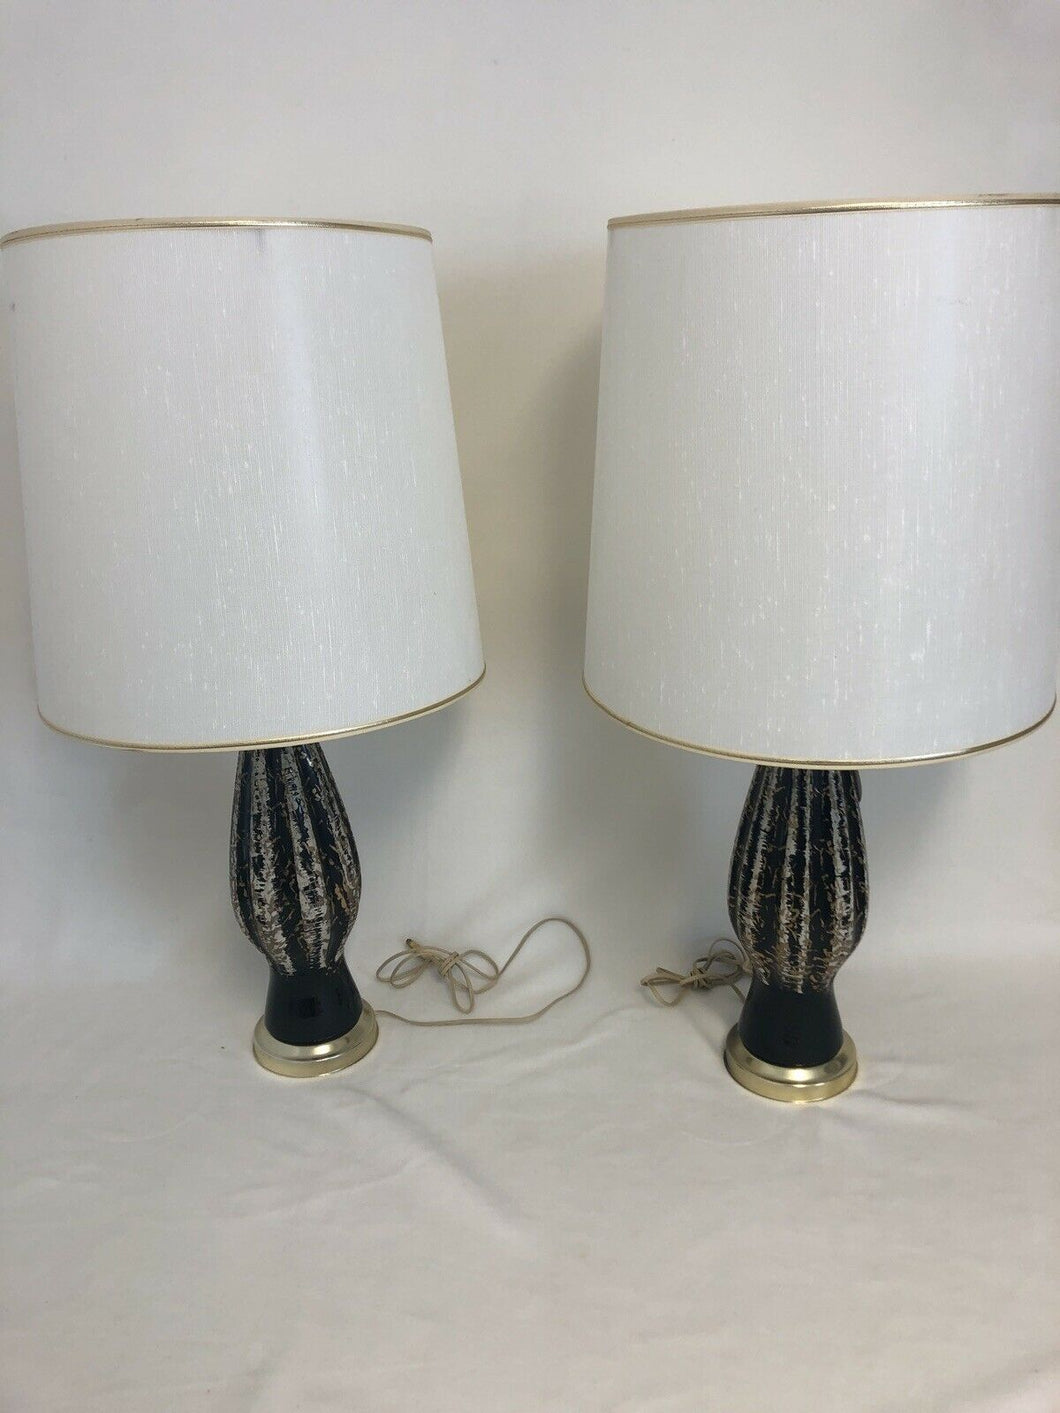 Pair Of Mid Century Danish Modern Atomic Black & Gold Eames Era Table Lamps 29""